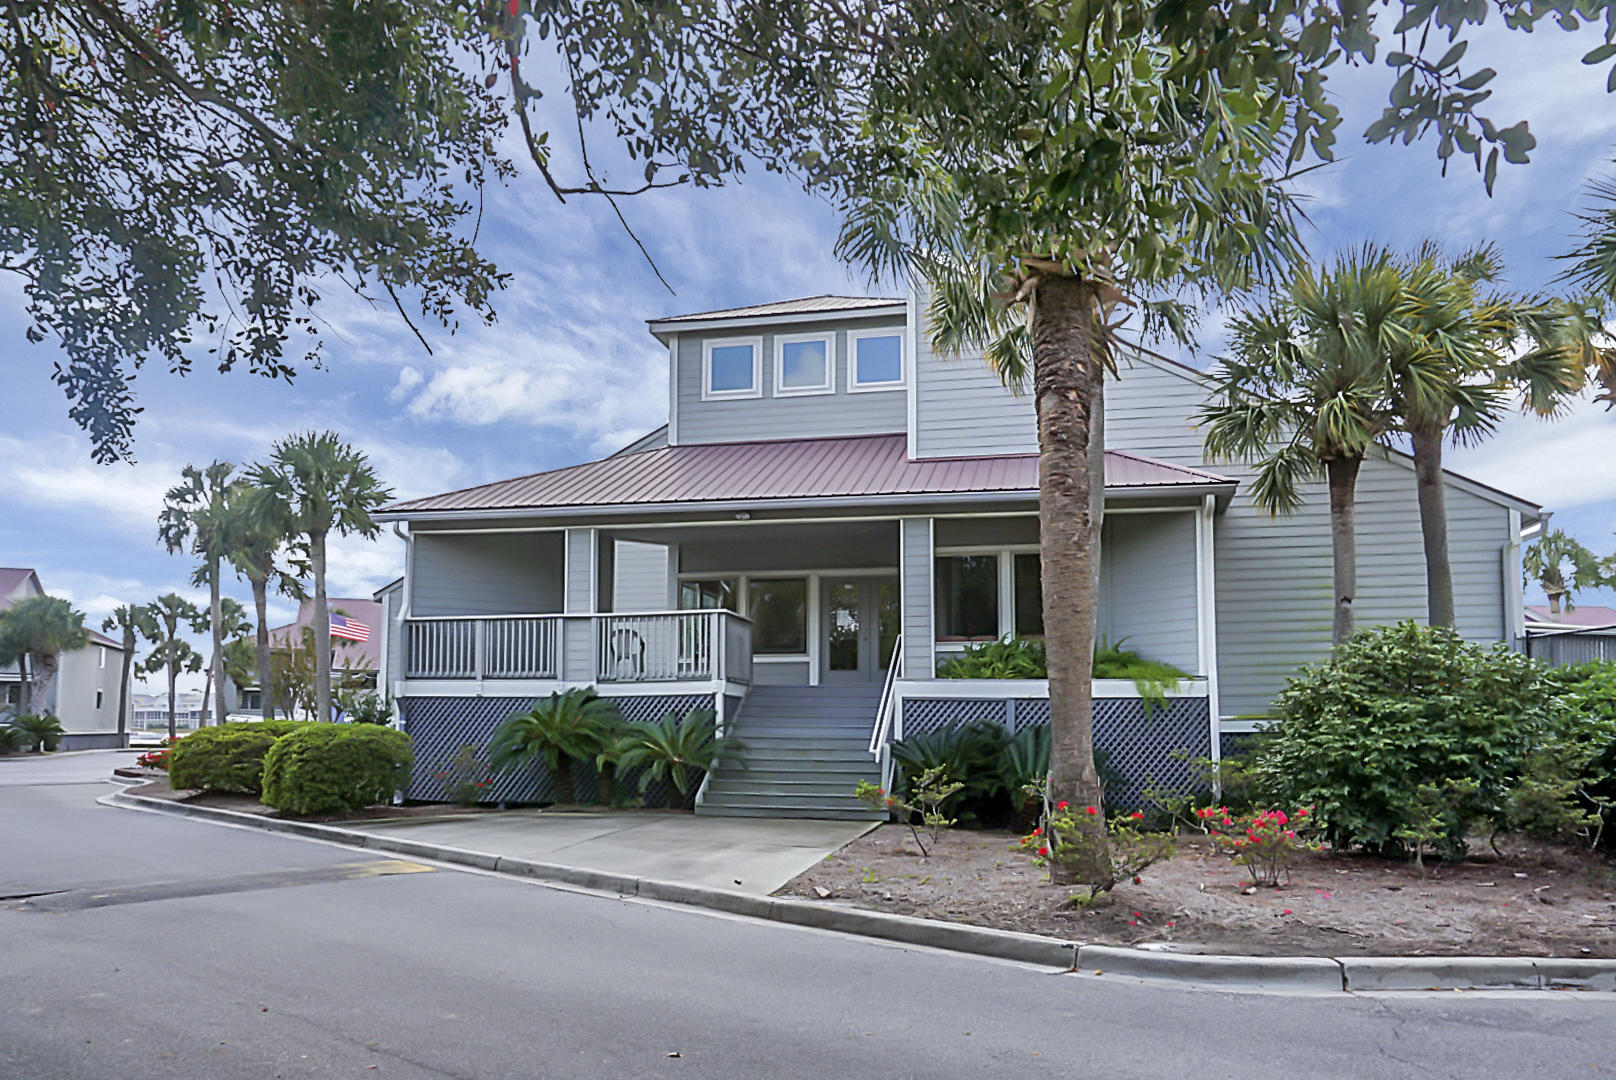 Mariners Cay Homes For Sale - 45 Mariners Cay, Folly Beach, SC - 60